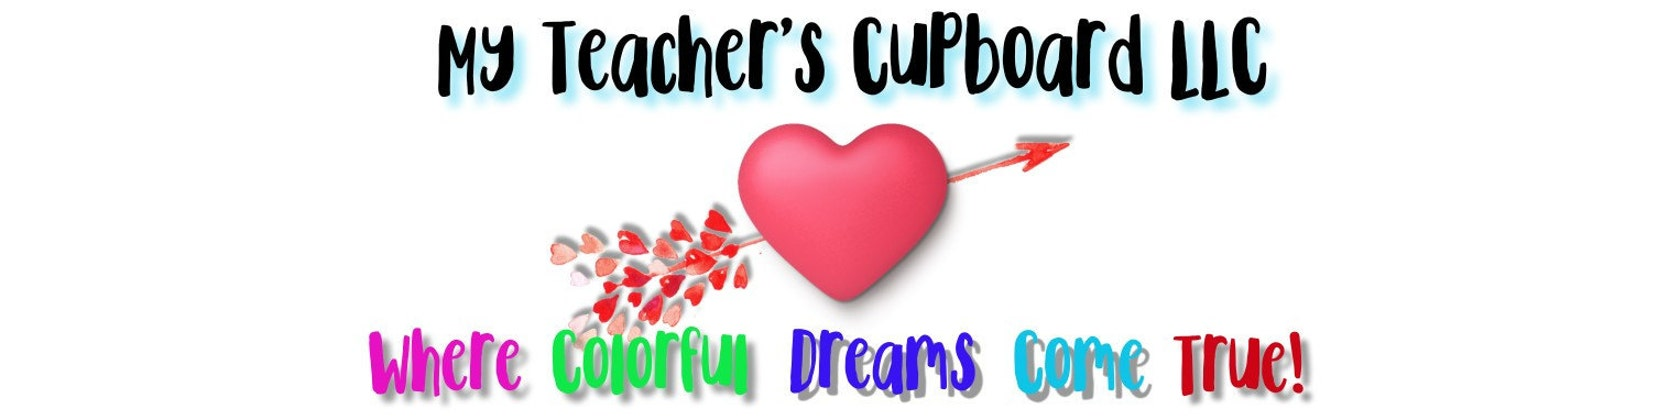 My Teacher's Cupboard Office Craft and Party by